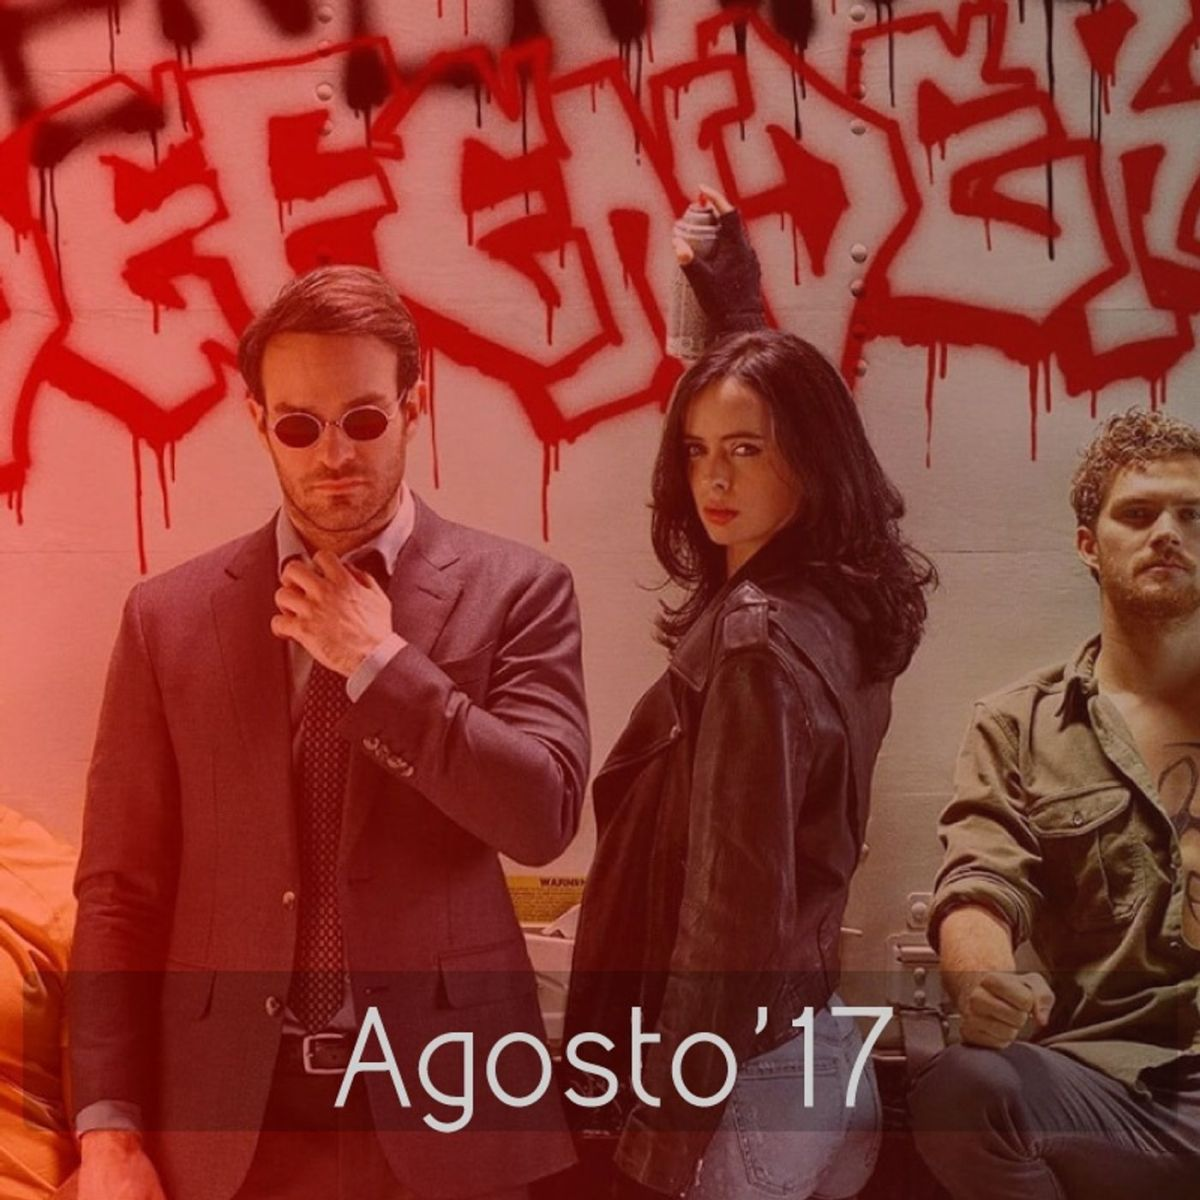 Netflixvision#Agosto'17: The Defenders, Atypical, Vikings, Death Note